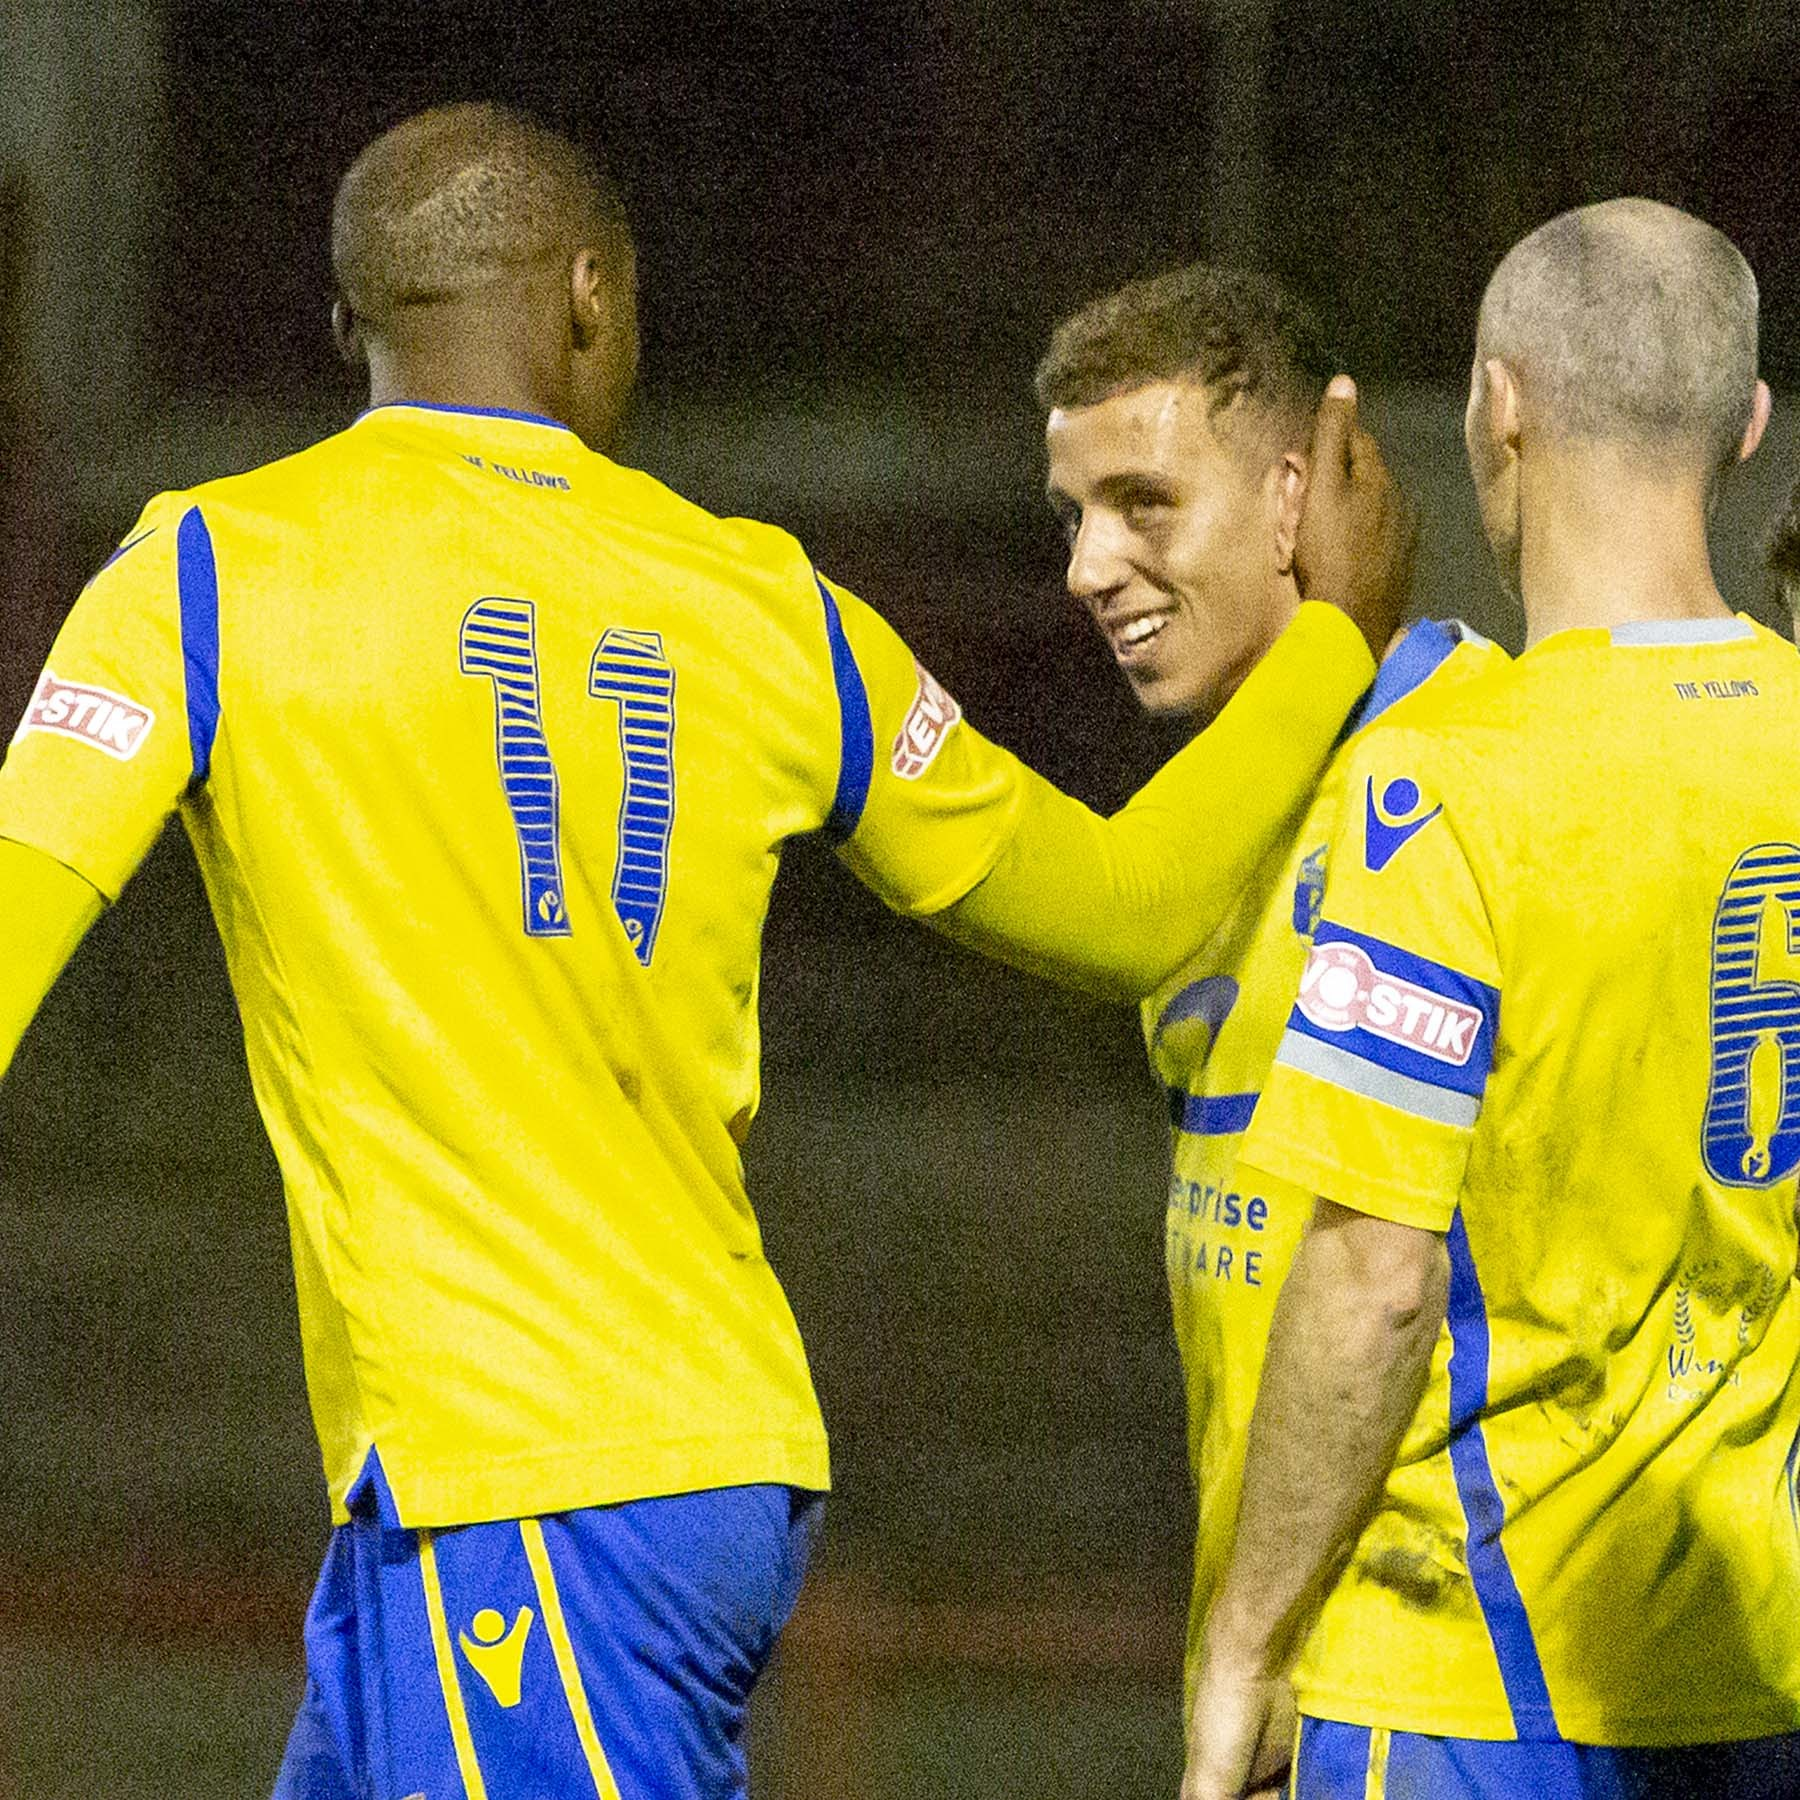 Dylan Vassallo is congratulated after scoring at Workington. Picture by John Hopkins